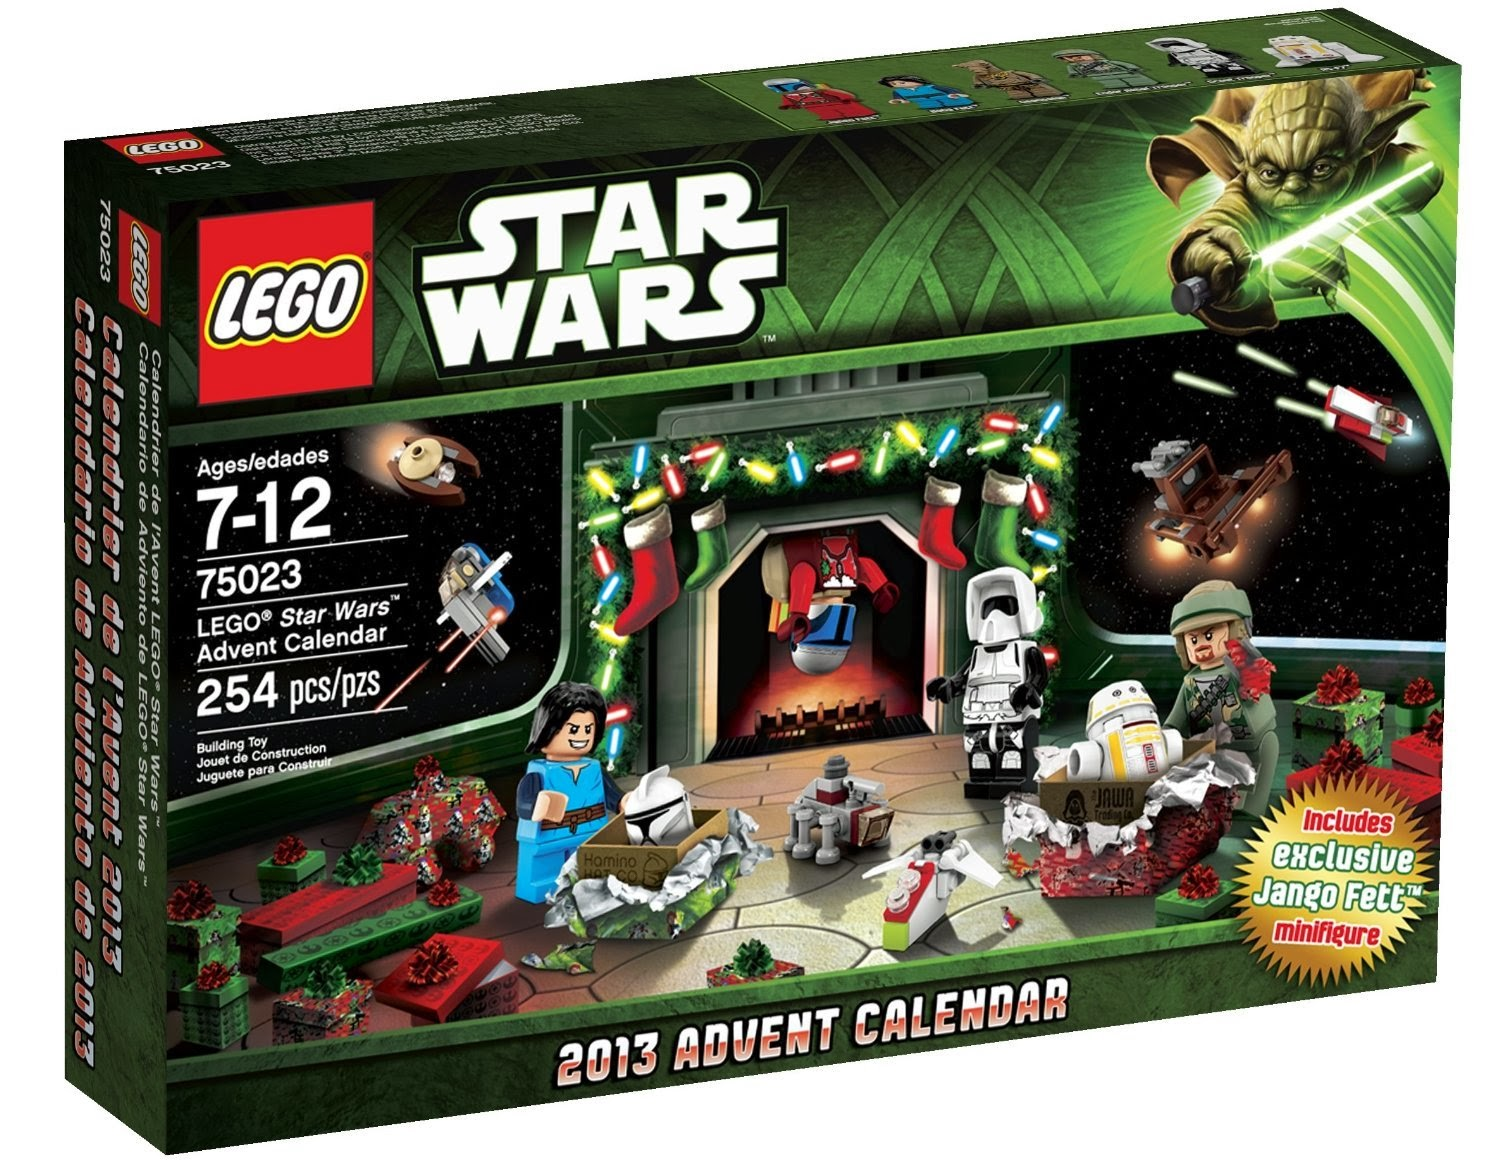 Cool Toys For Christmas 2013 : Lego star wars advent calendar best and top toys